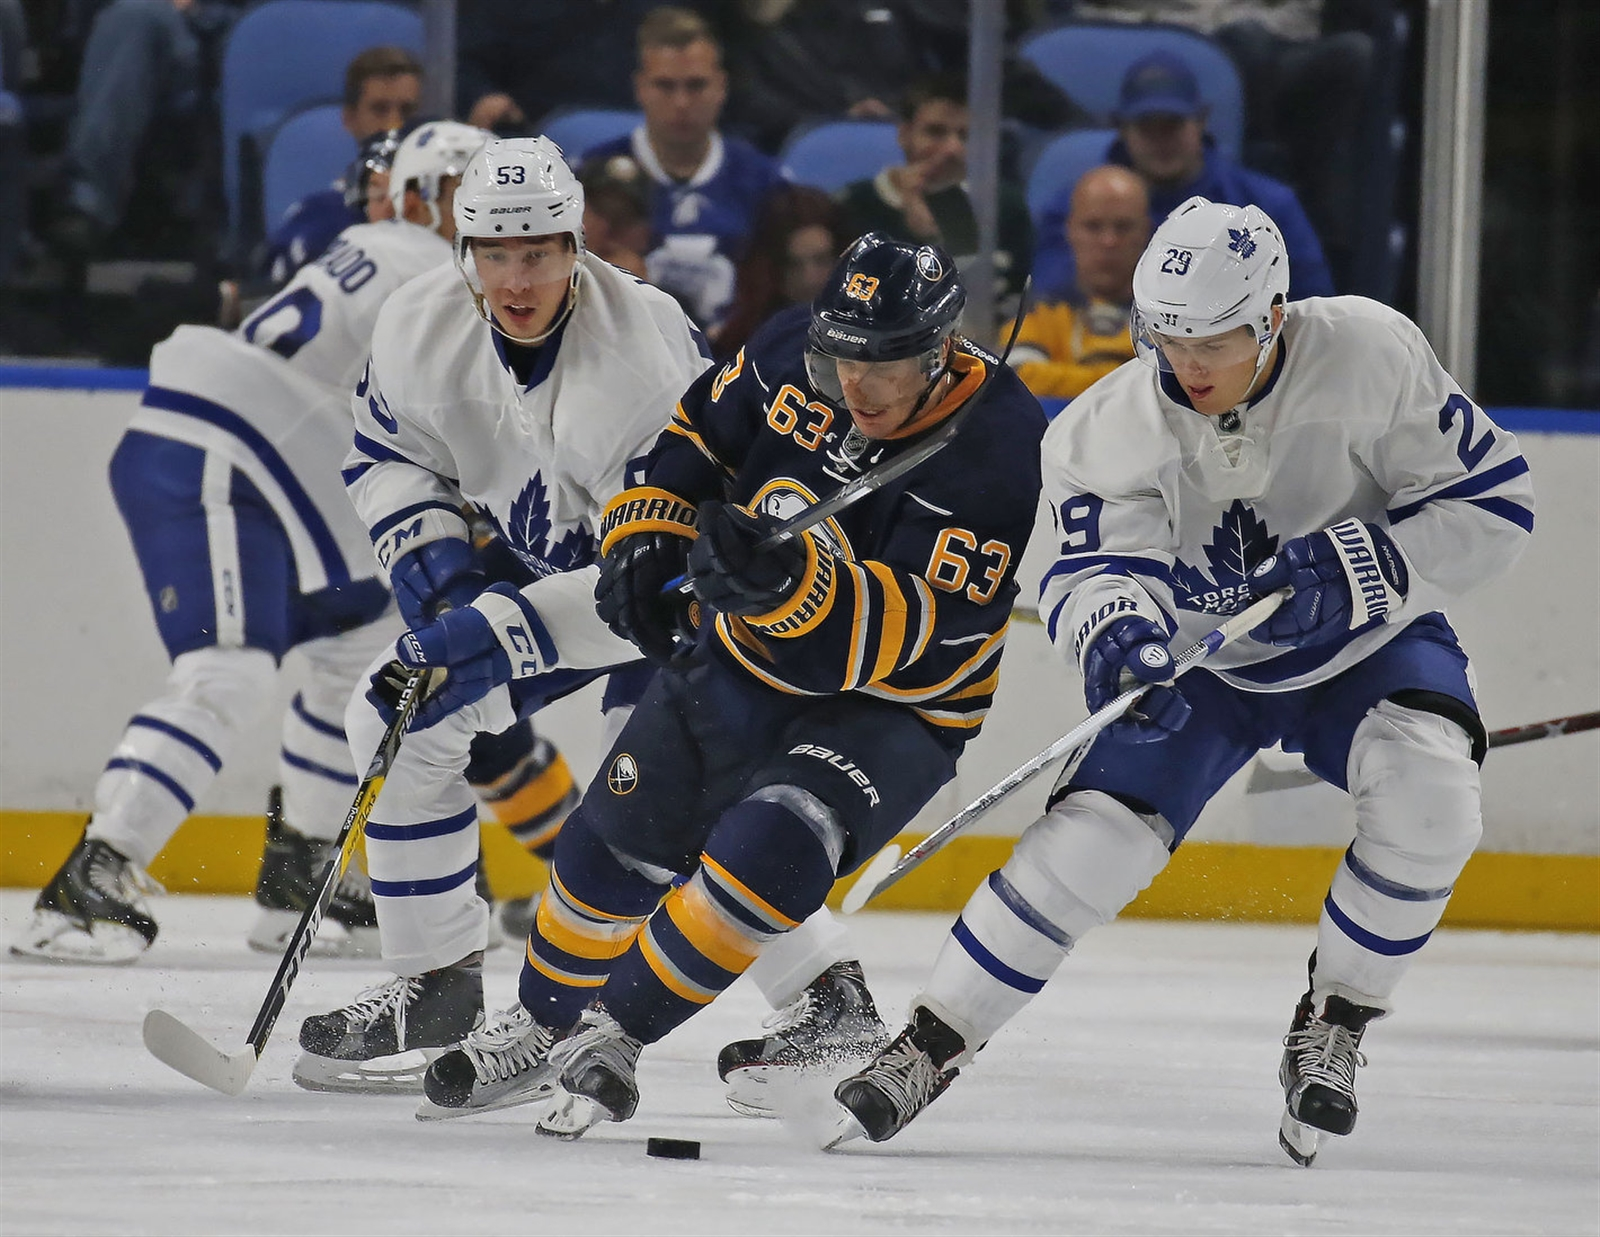 Buffalo's Tyler Ennis (63) tries to get to the puck before Toronto's William Nylander, right, in NHL action at KeyBank Center on  Friday, Sept. 30, 2016.